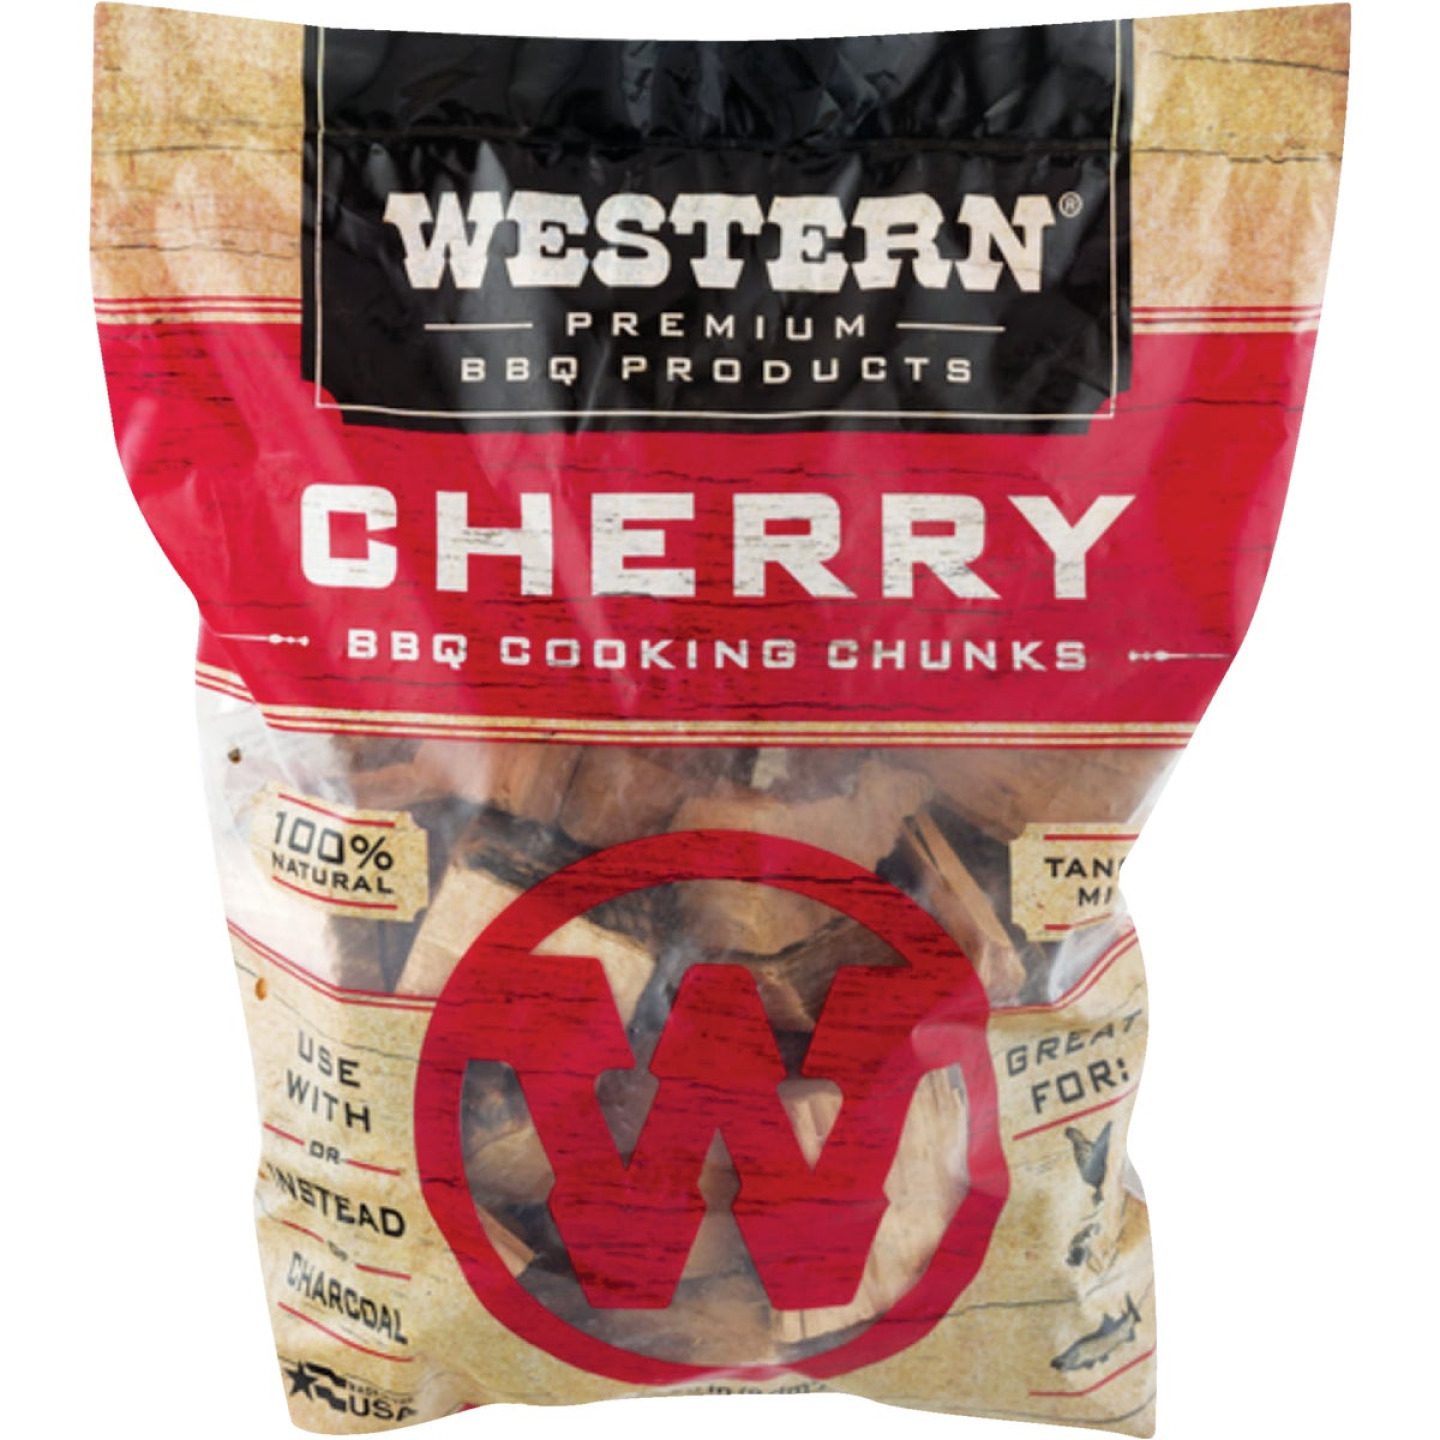 Western 6 Lb. Cherry Wood Smoking Chunks Image 1